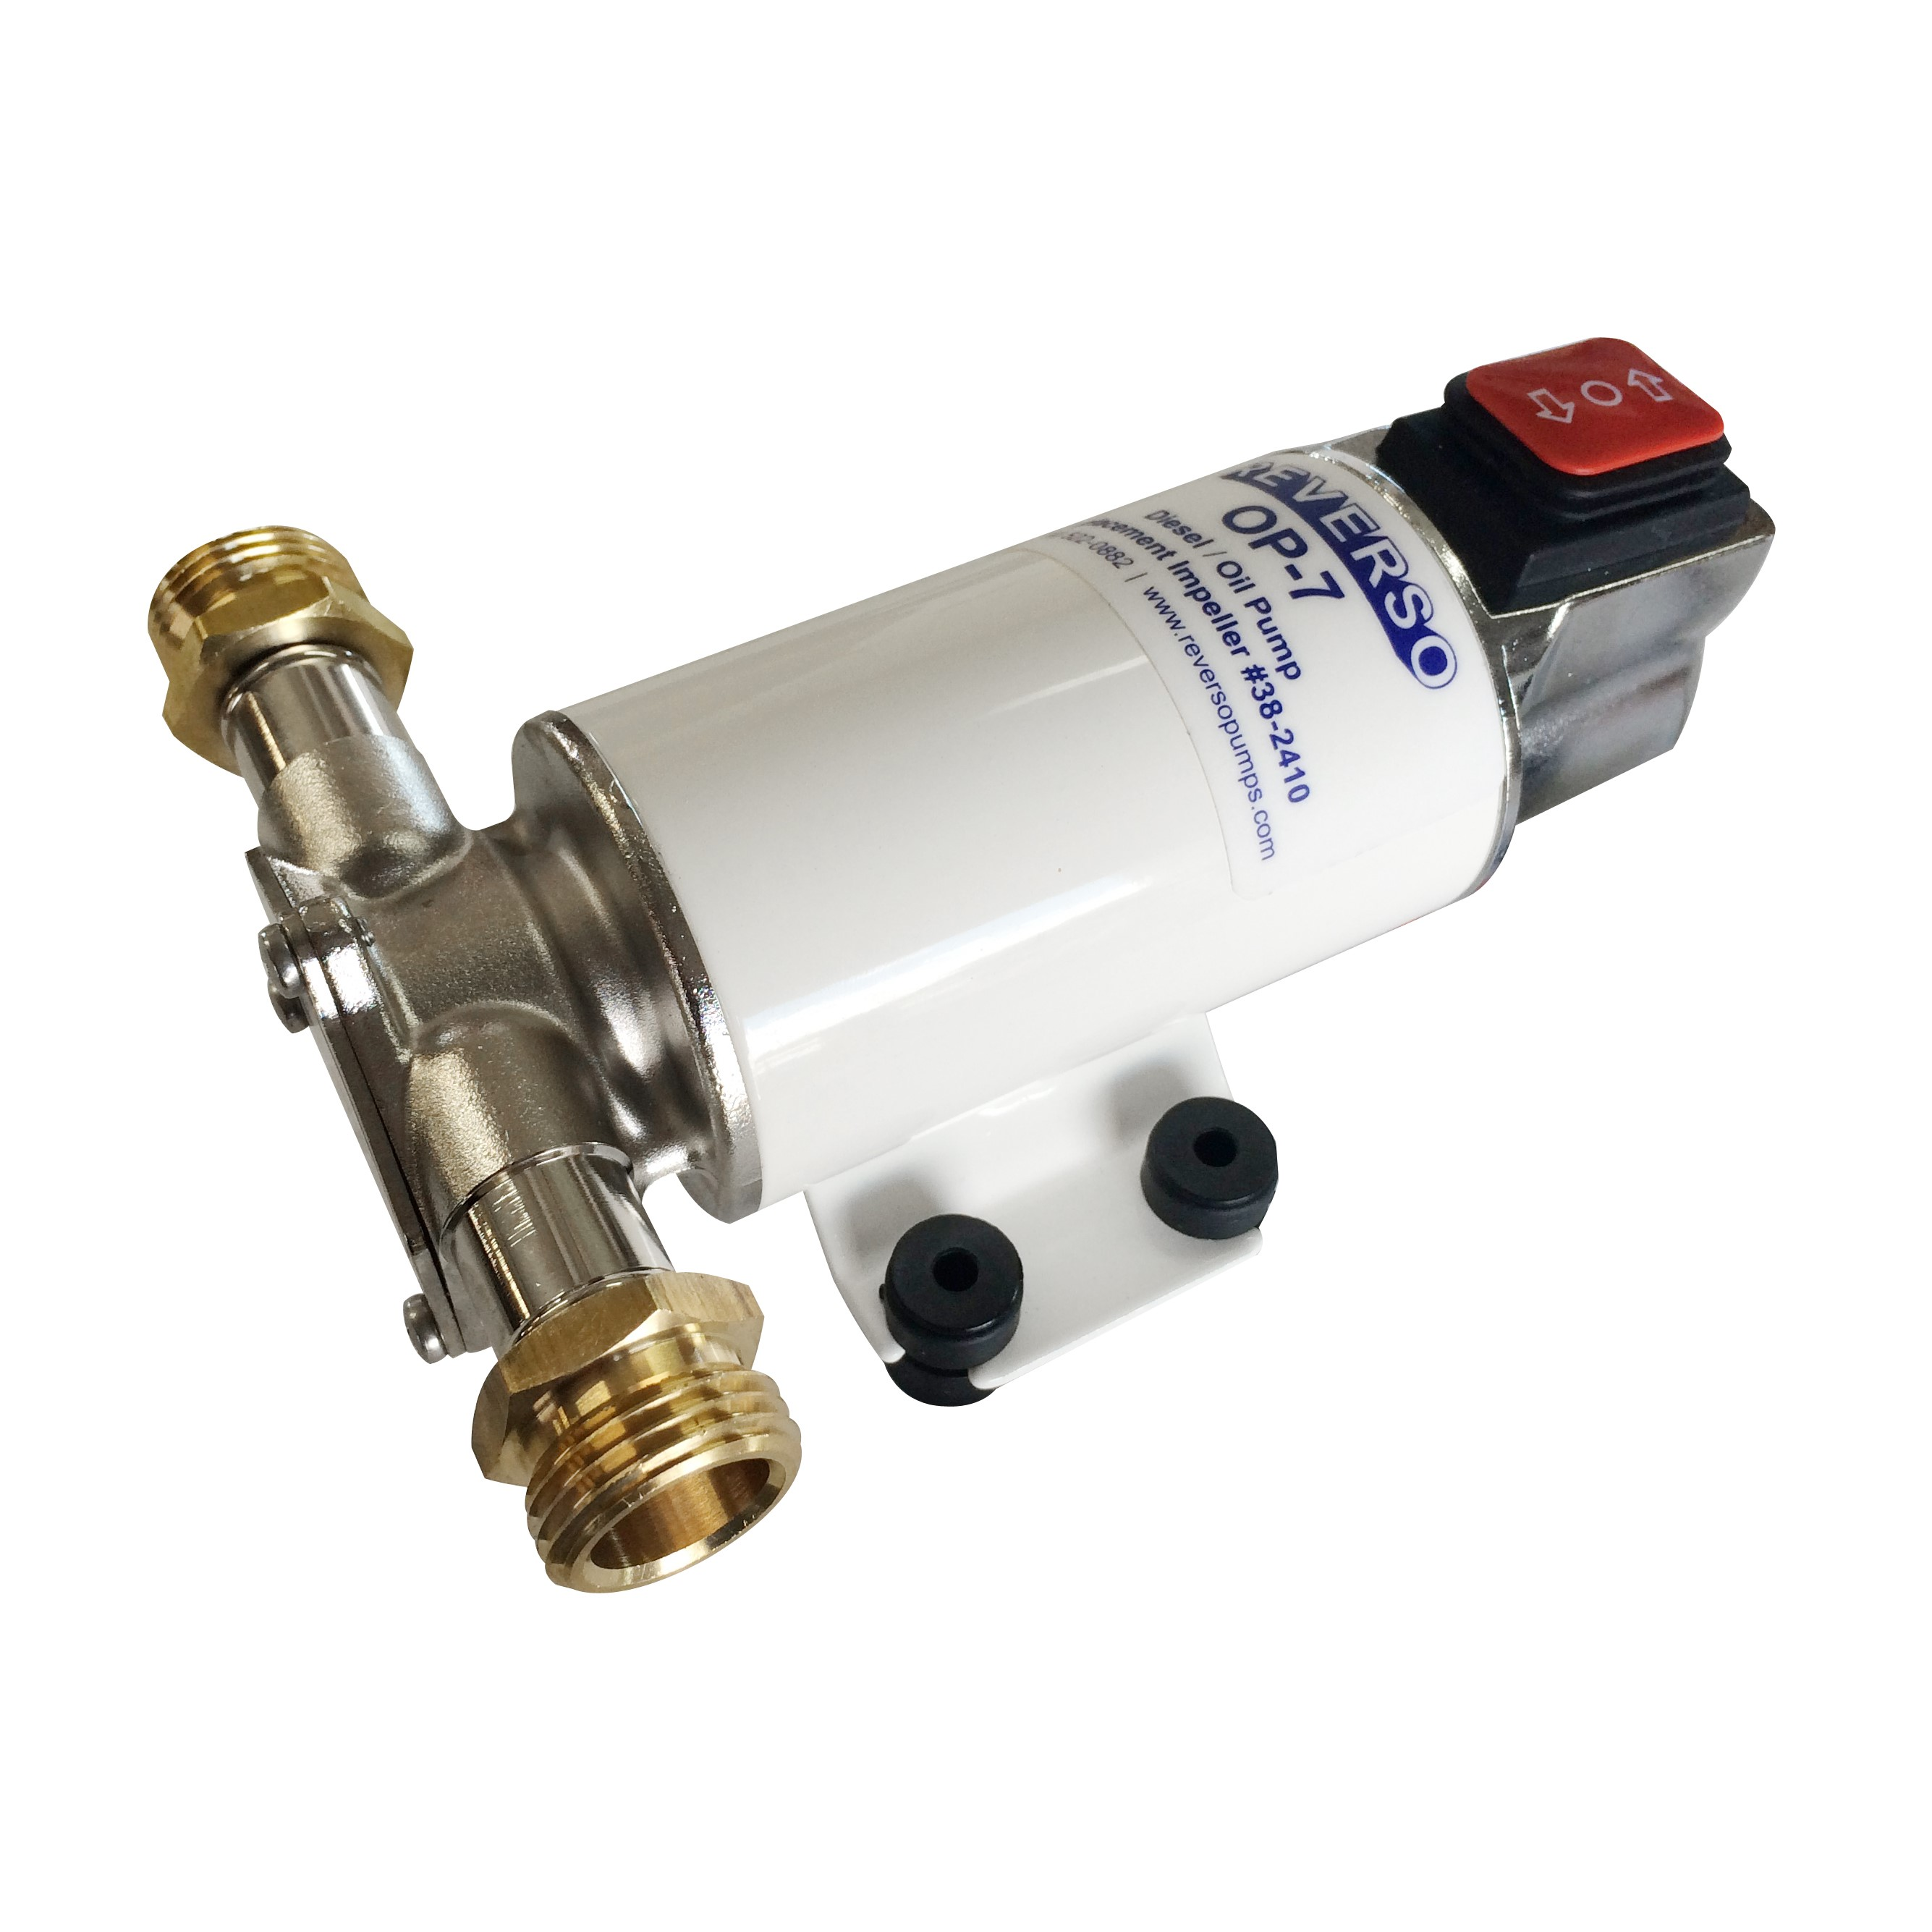 Reverso Oil/Fuel Transfer Pump